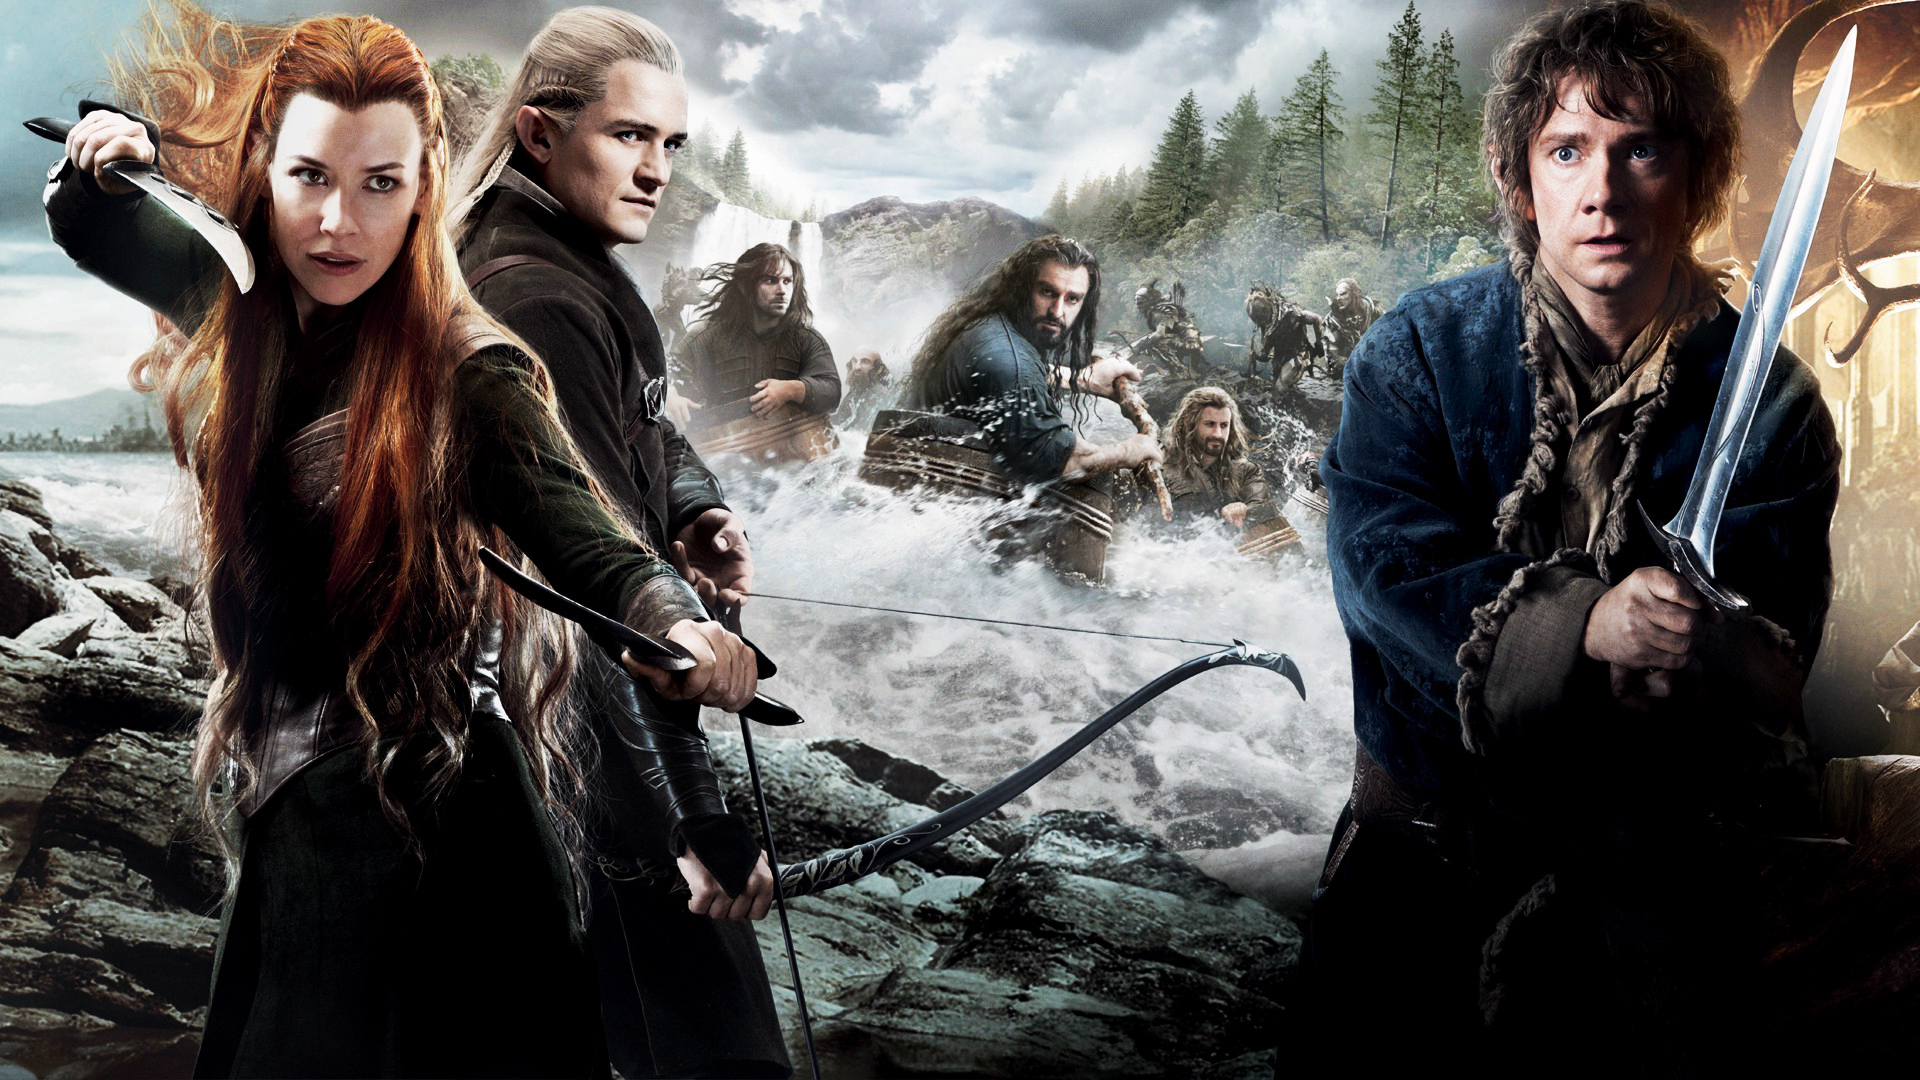 The Desolation of Smaug - Legolas Greenleaf Photo ... |The Hobbit The Desolation Of Smaug Legolas